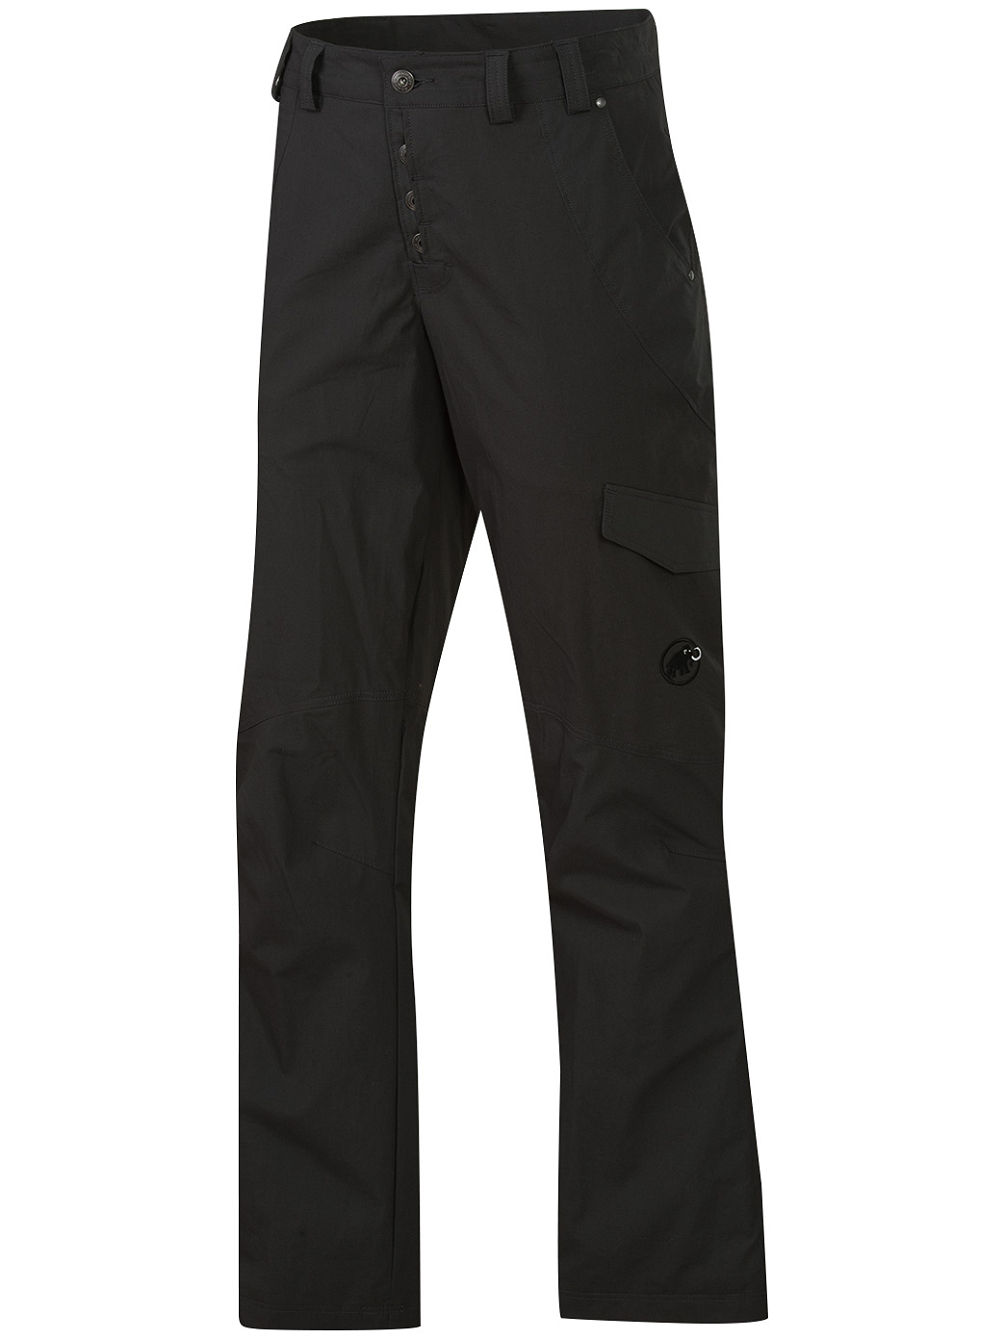 mammut-trovat-advanced-outdoor-pants